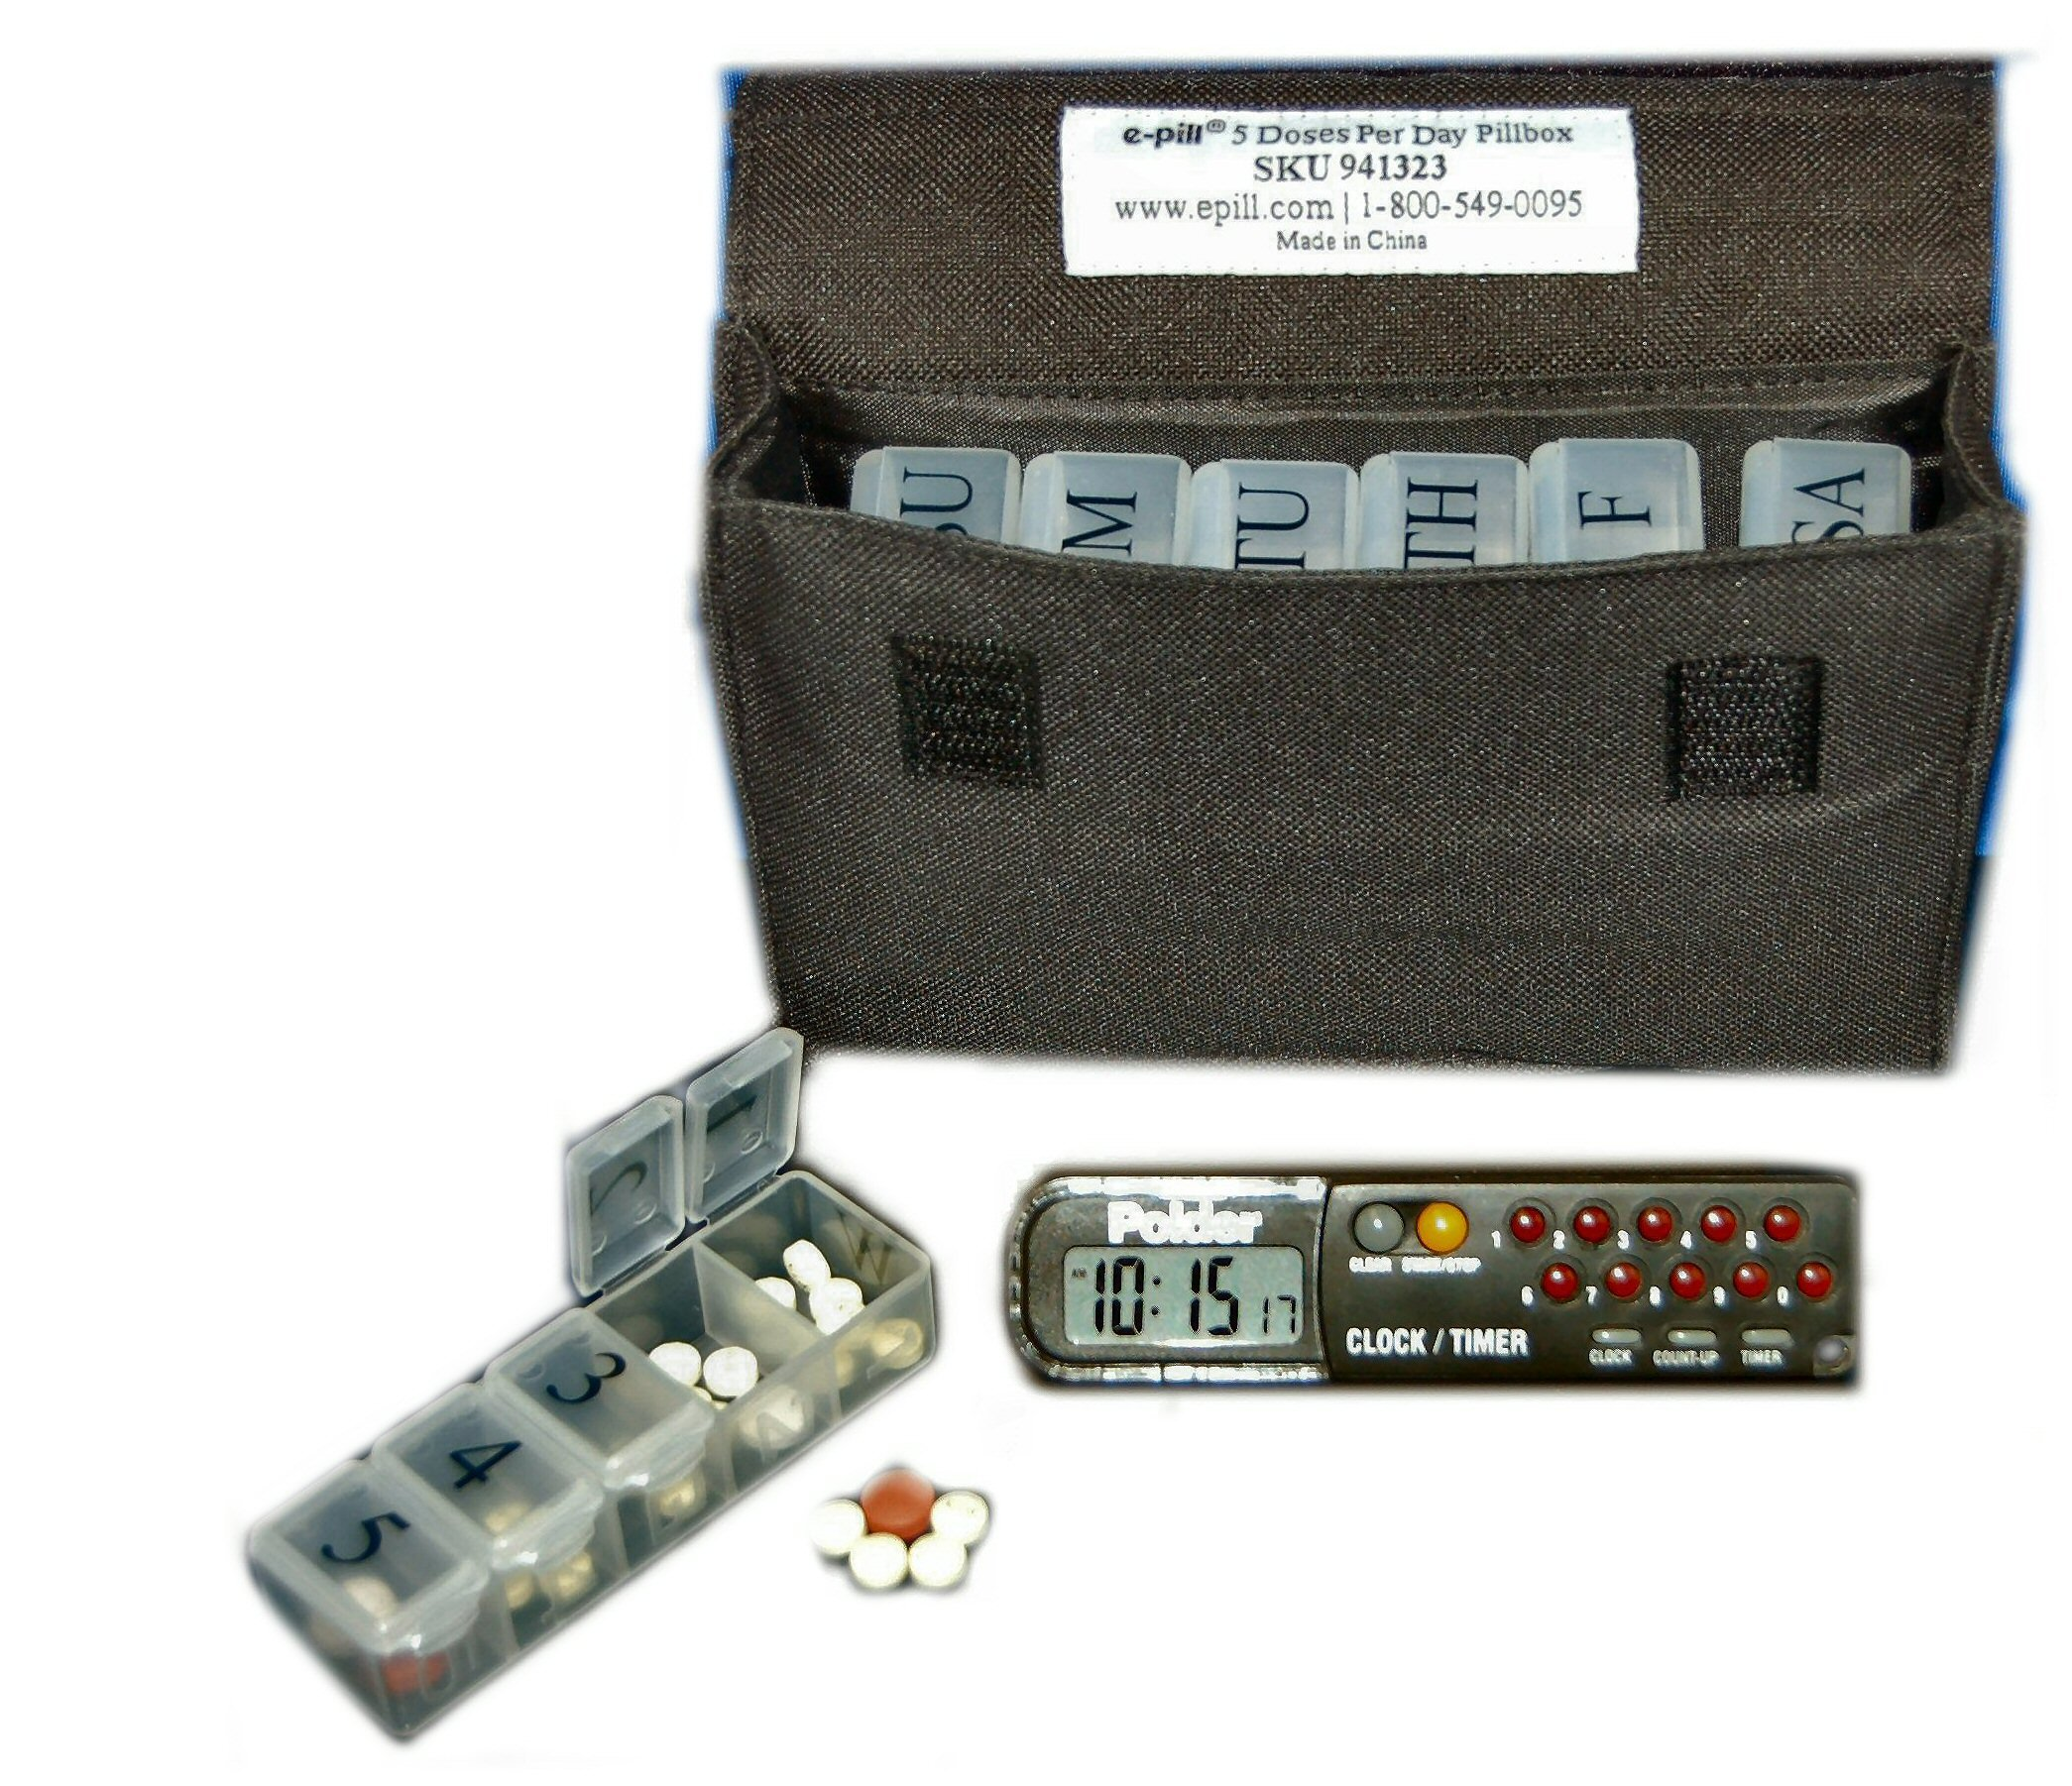 e-Pill | Parkinson's 5 Doses per Day x 7 Day Weekly Pill Organizer with Countdown Interval Timer, Black Canvas Bag and Lanyard